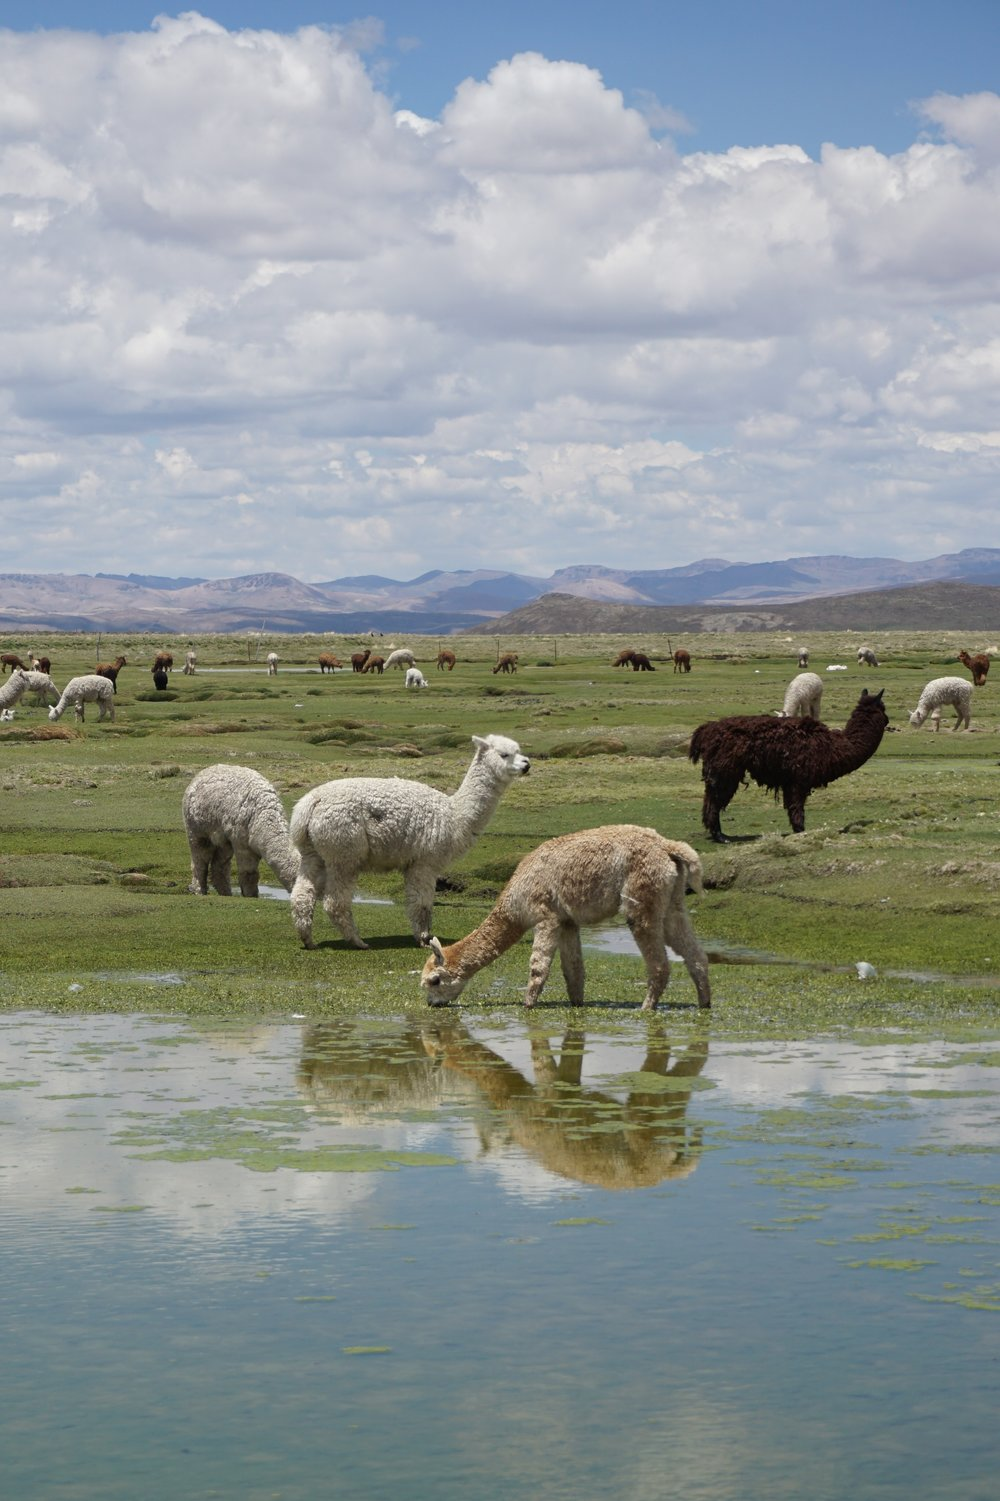 Native residents of the altiplano.